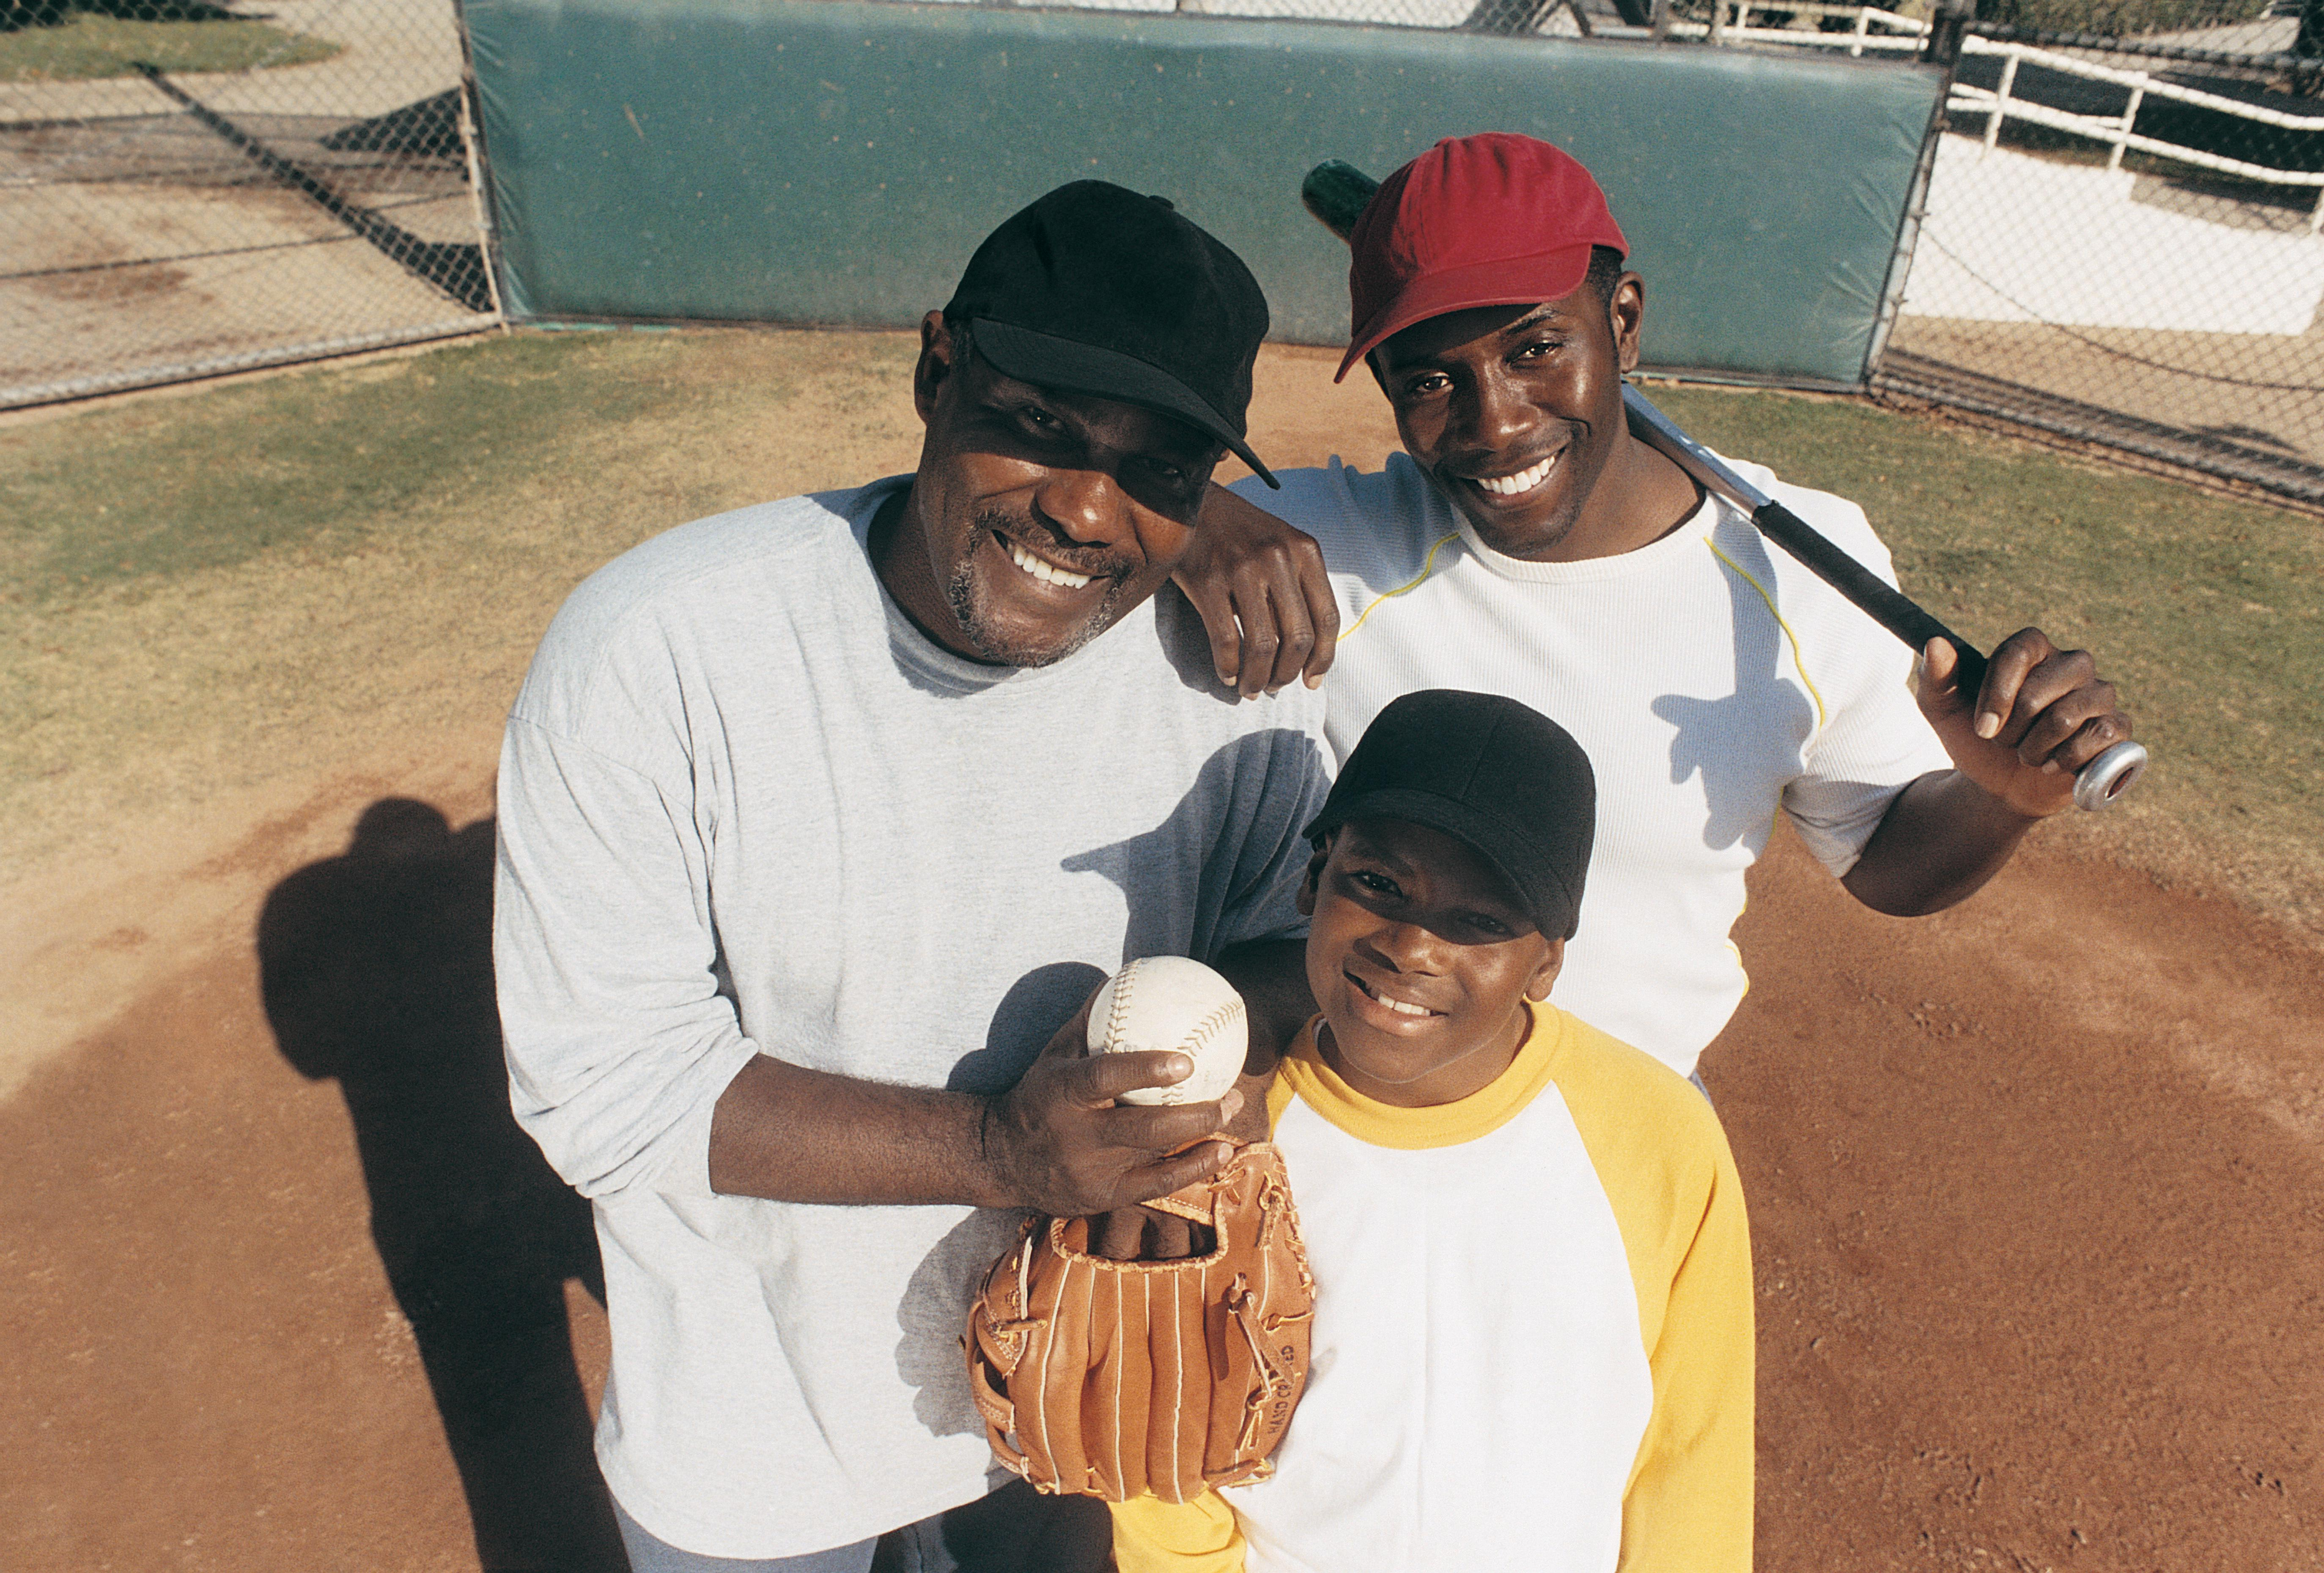 Portrait of a Father Standing With His Two Sons on a Baseball Field